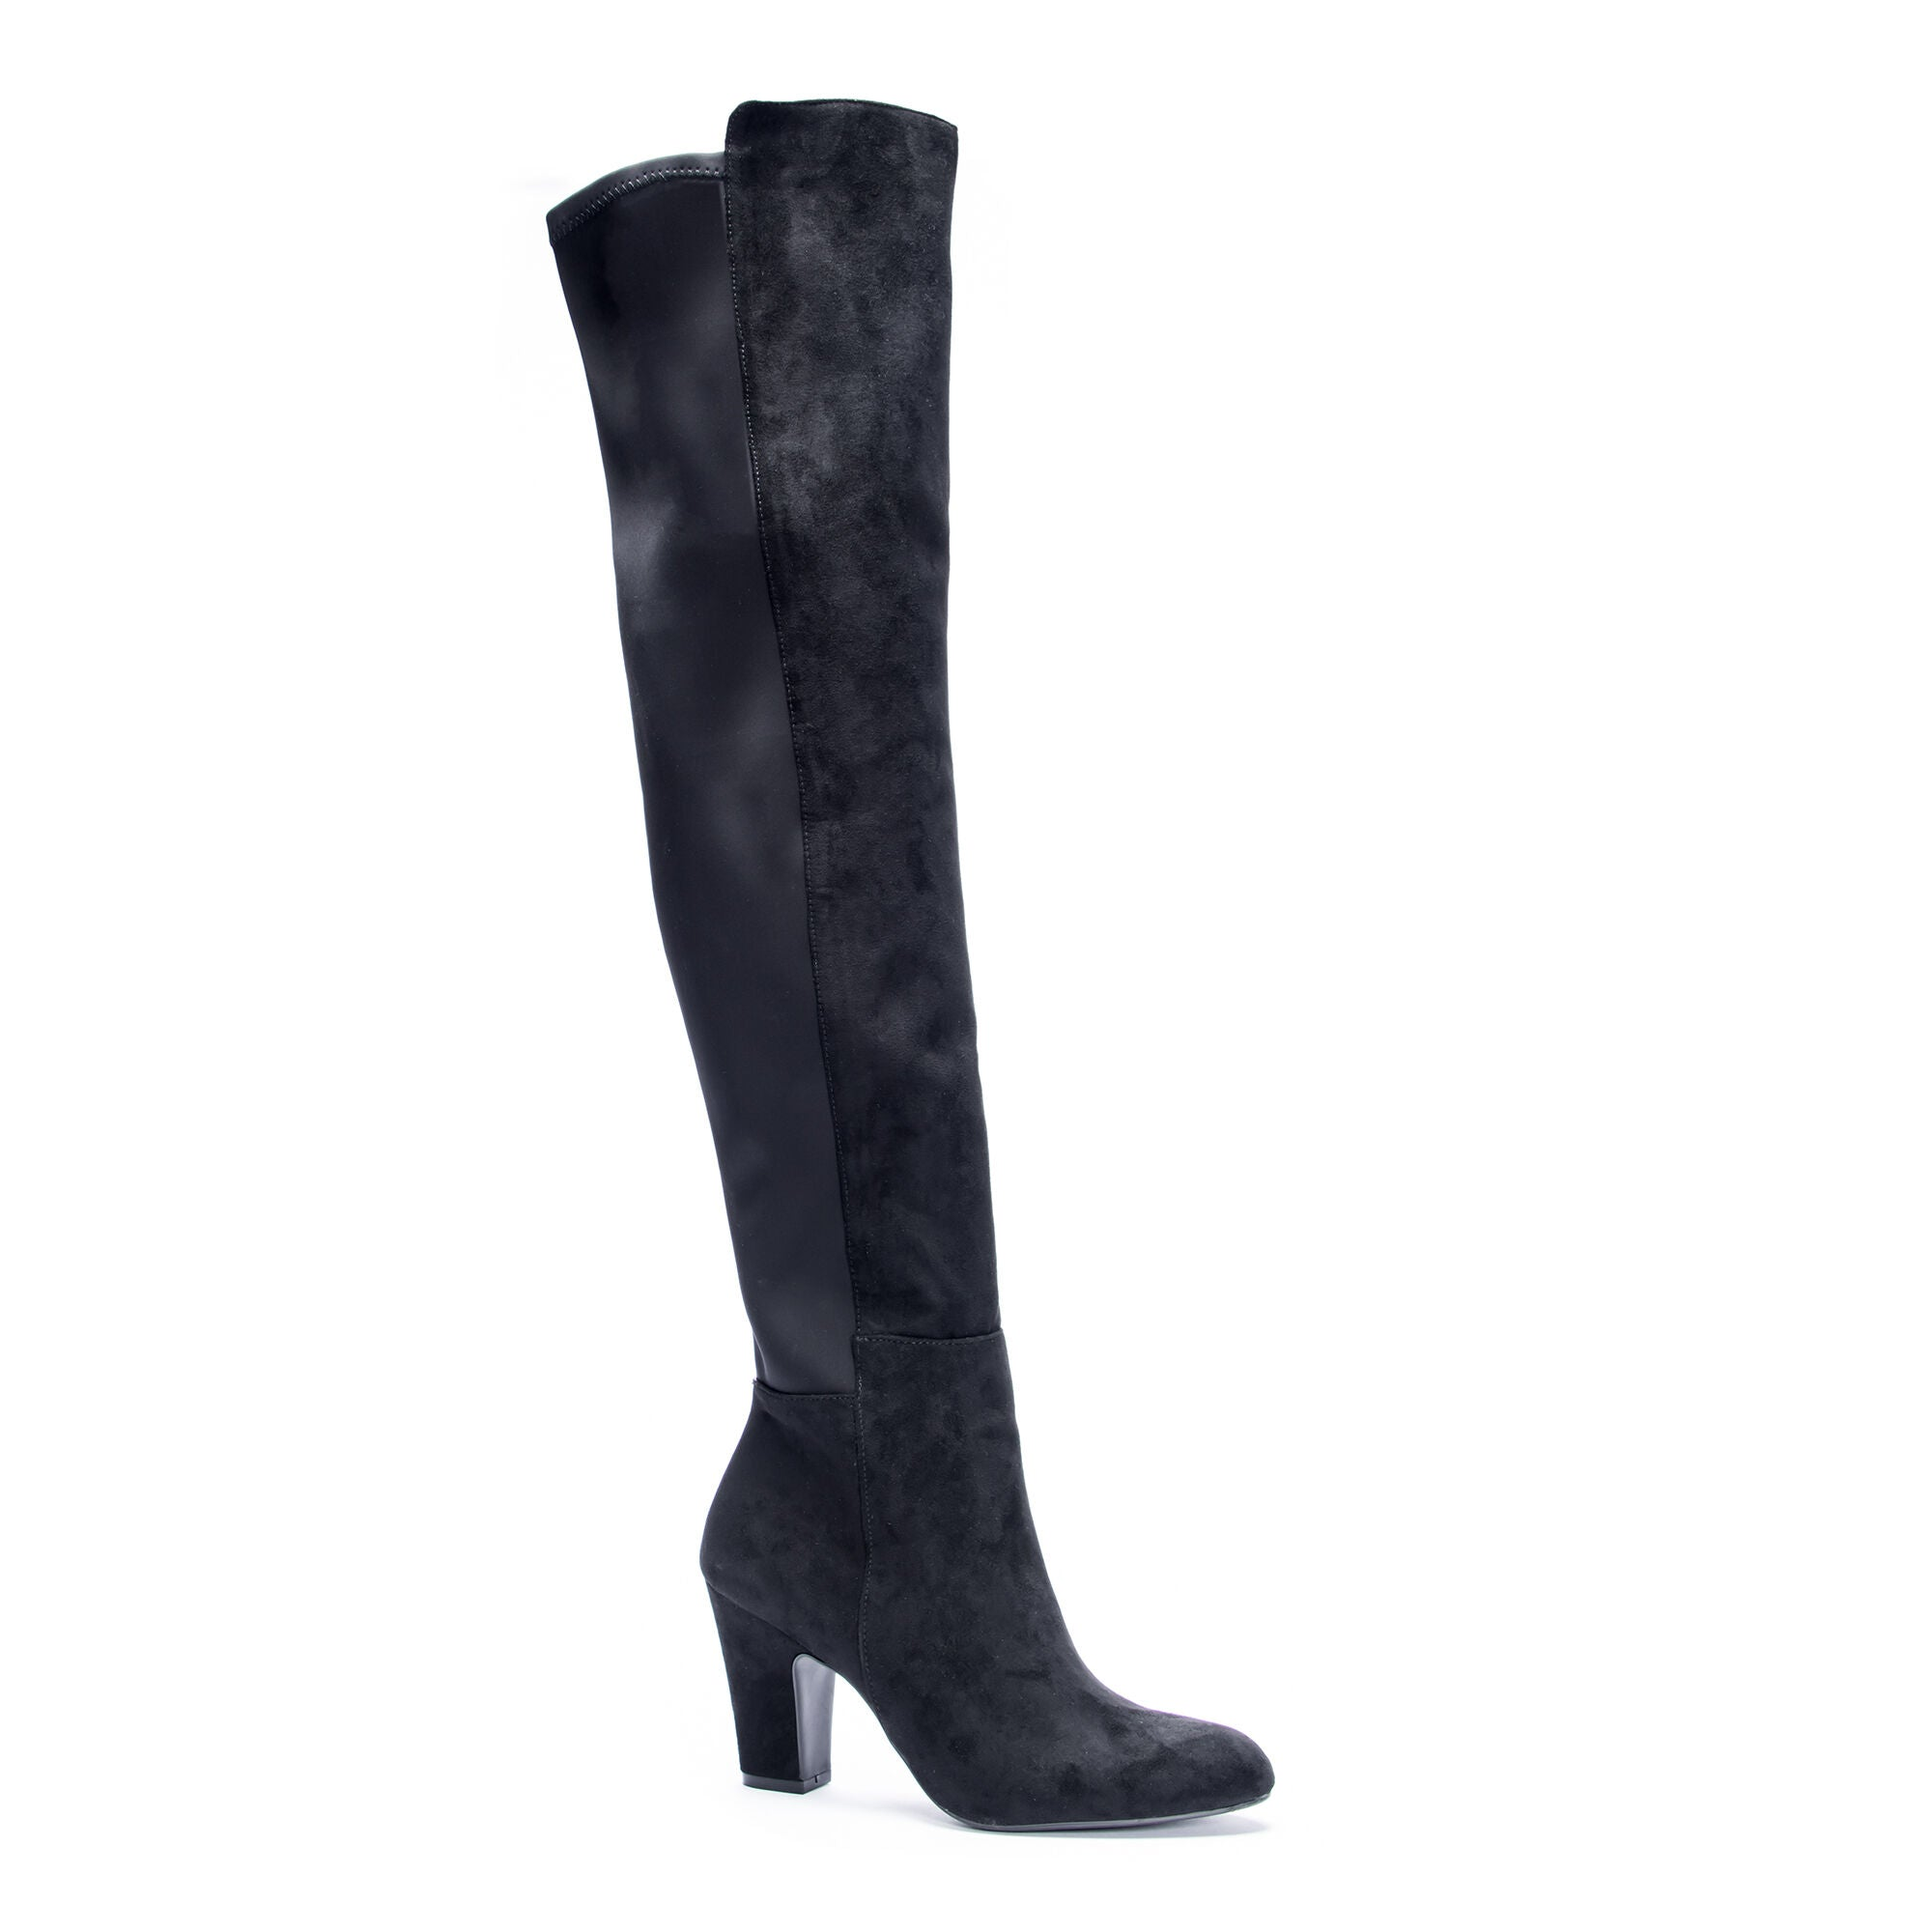 CHINESE LAUNDRY CANYONS FAUX SUEDE OVER THE KNEE BOOTS